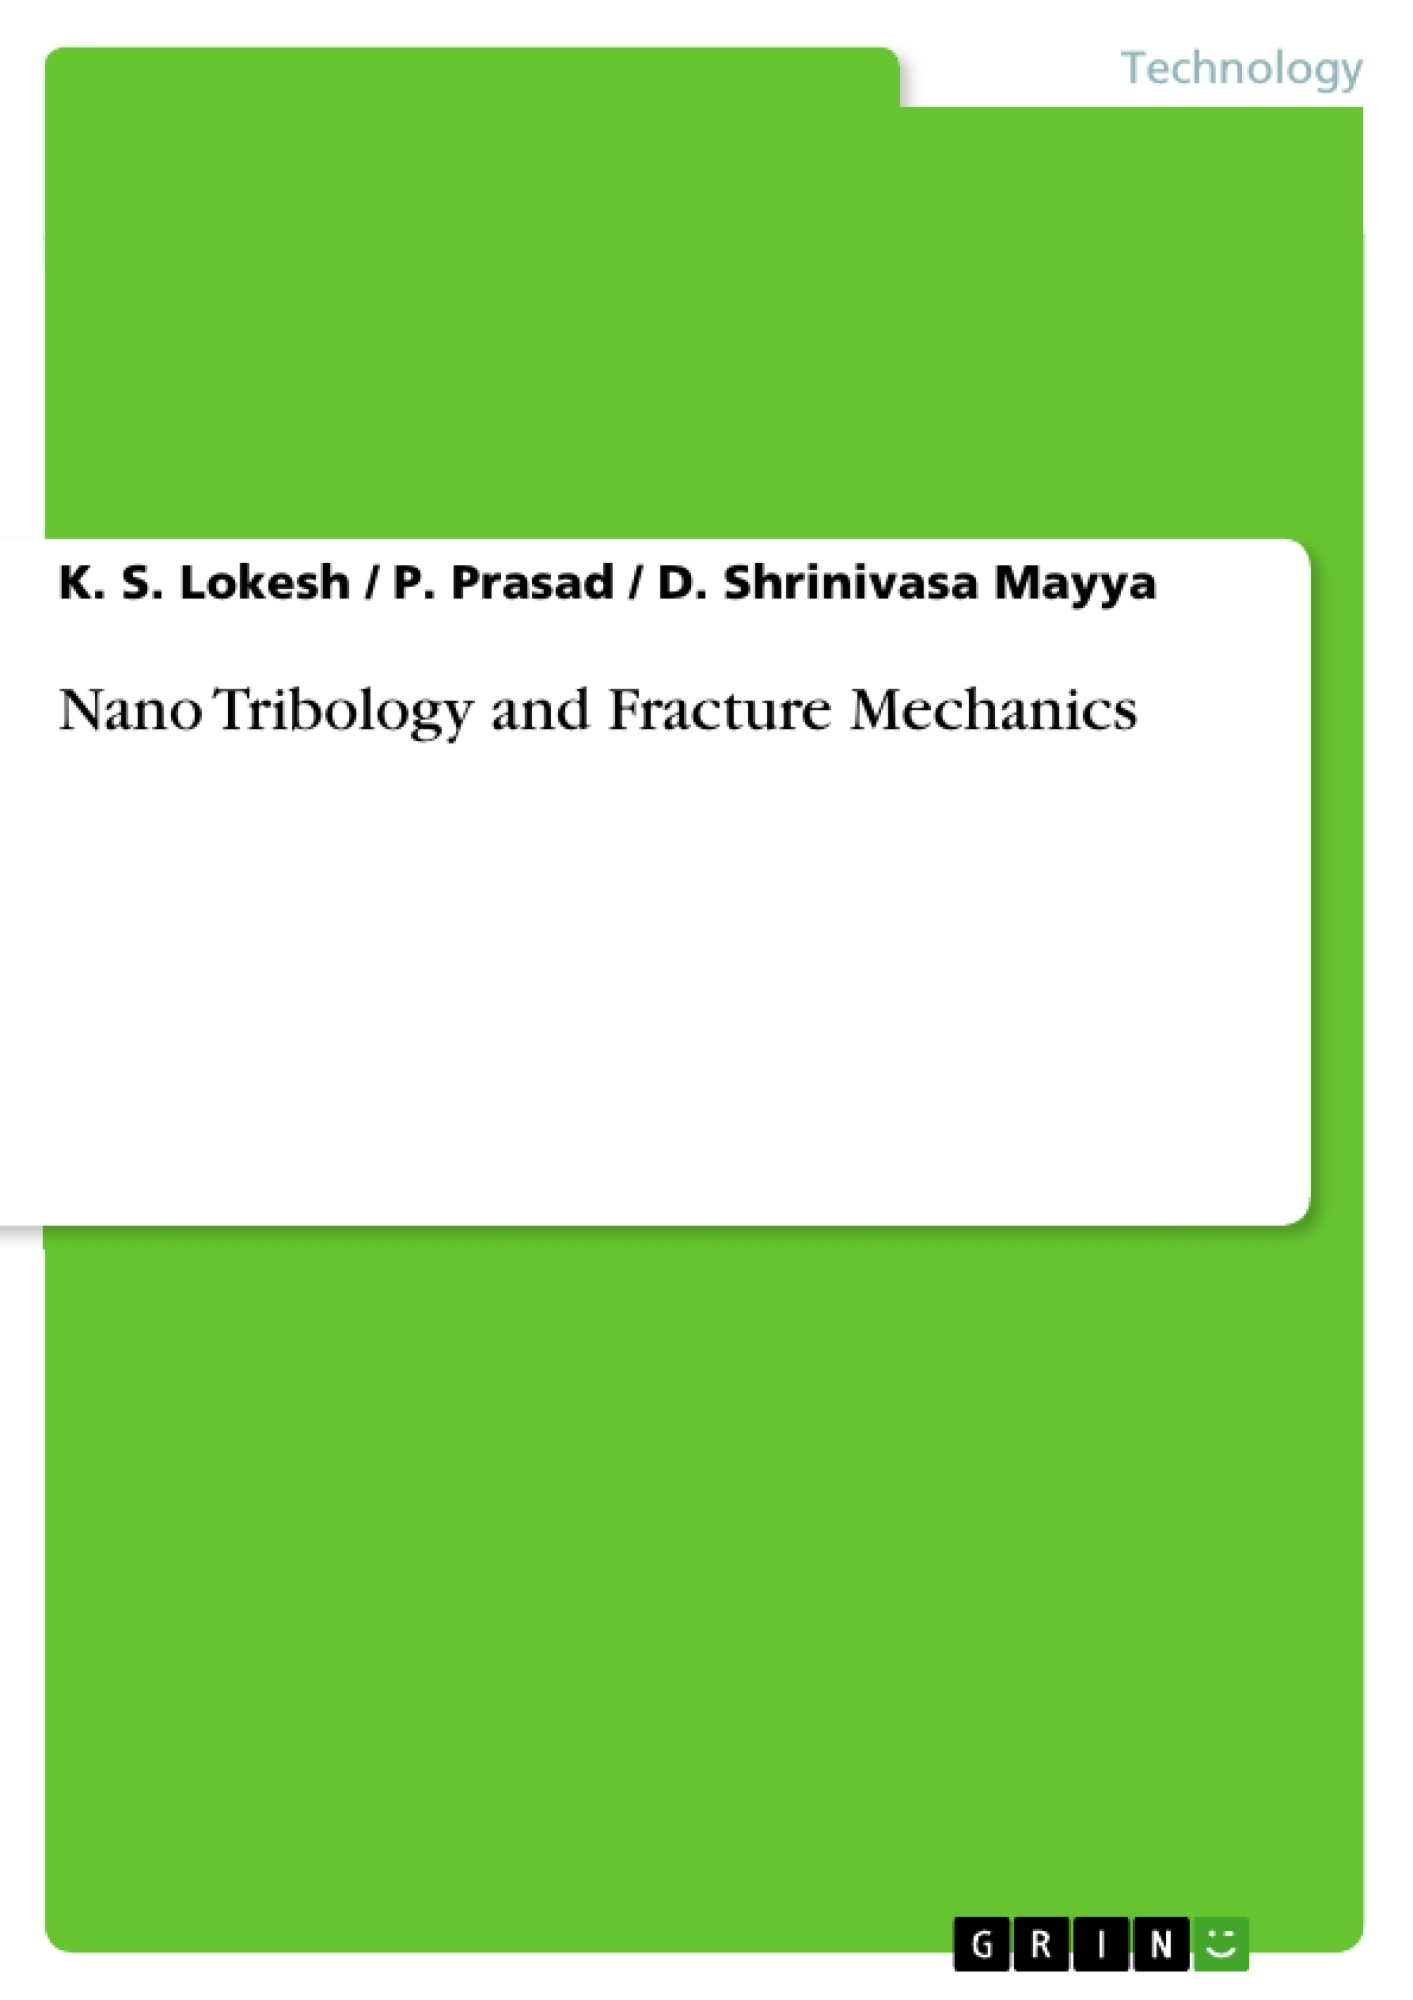 Title: Nano Tribology and Fracture Mechanics